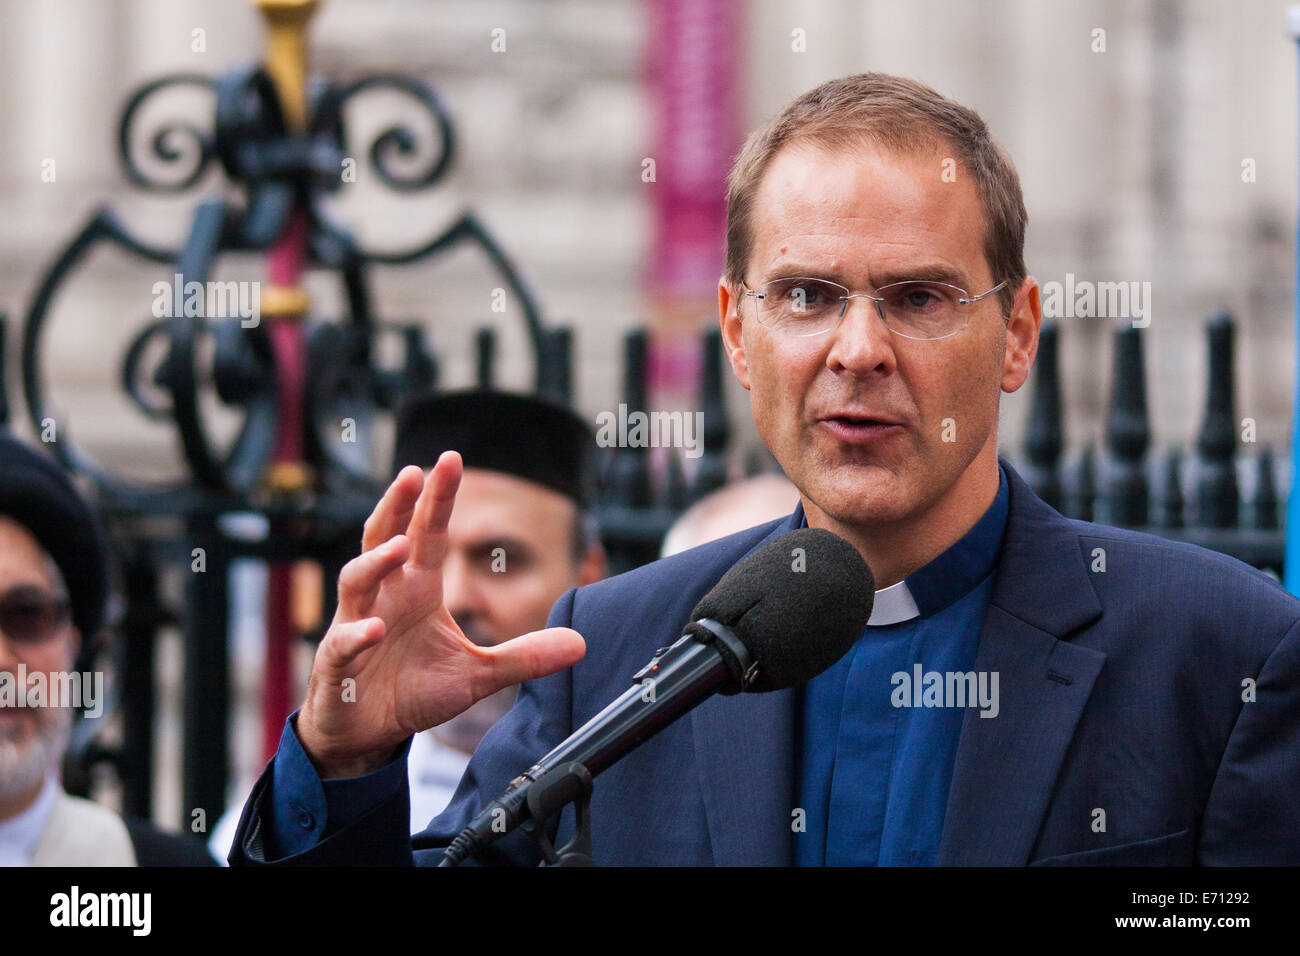 London, UK. 3rd September, 2014.   Leaders of different faiths meet at Westminster Abbey in London to hold a vigil - Stock Photo